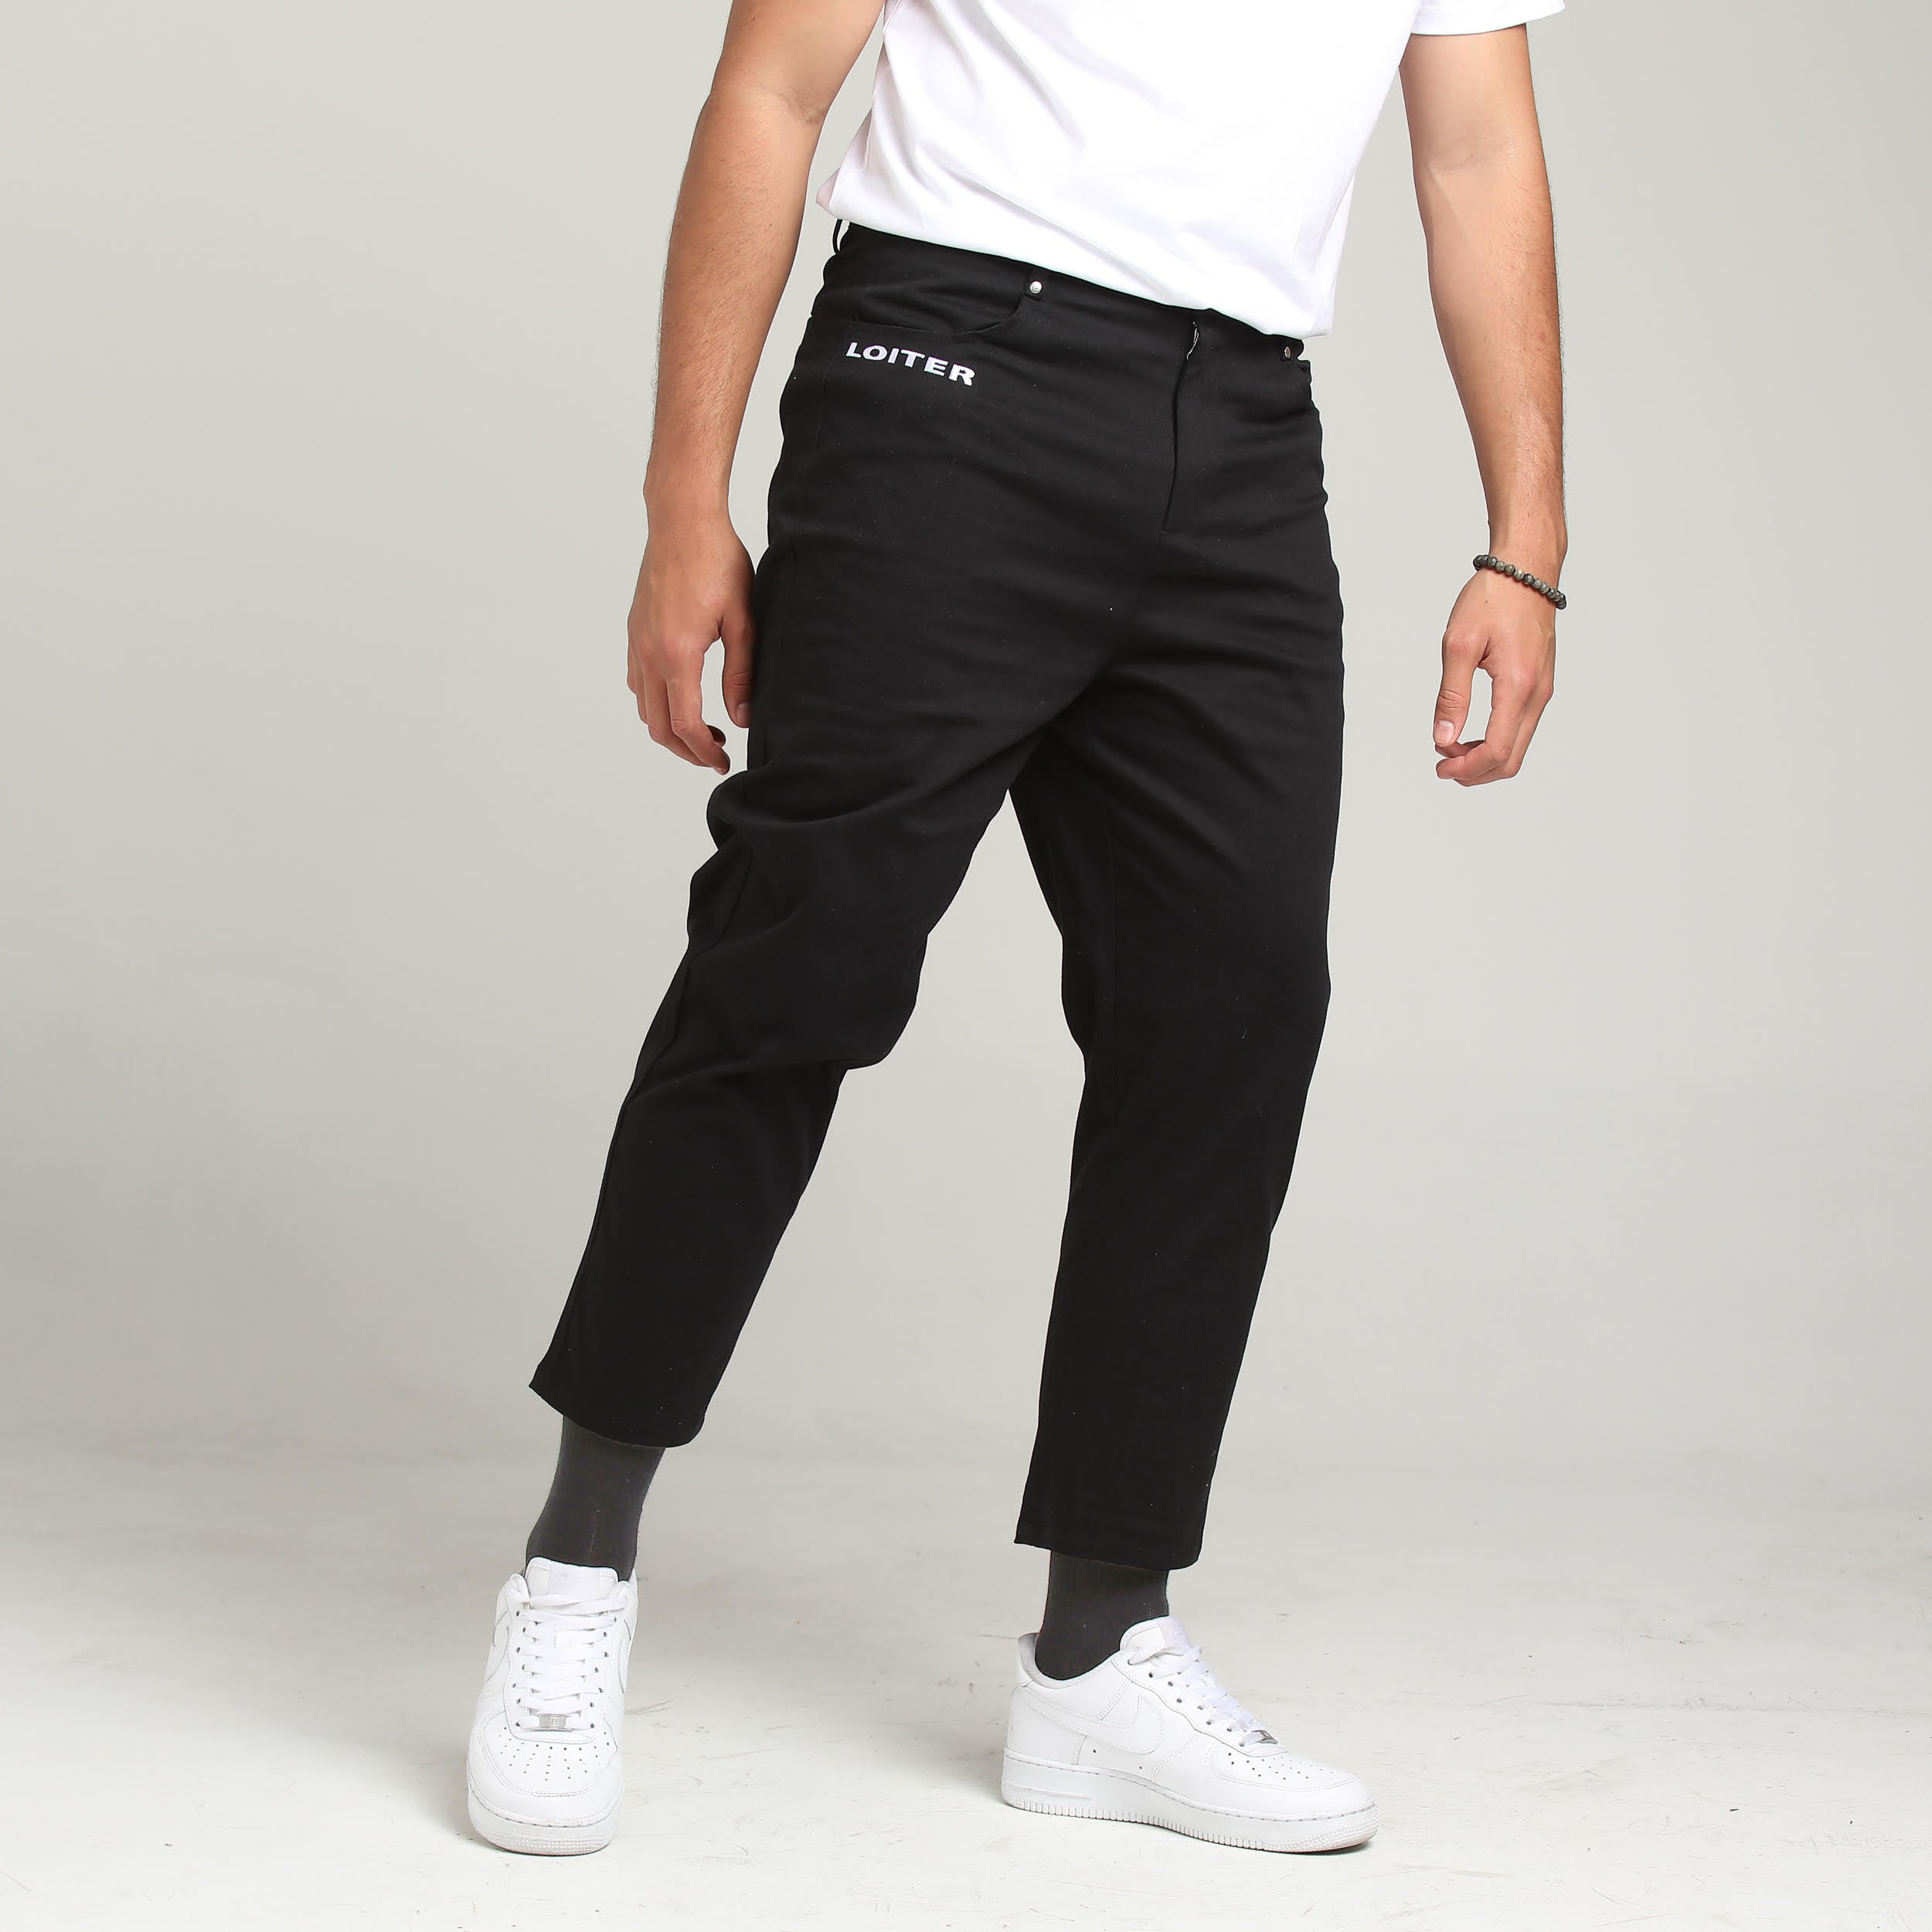 TACTIC CROPPED TROUSERS - Black